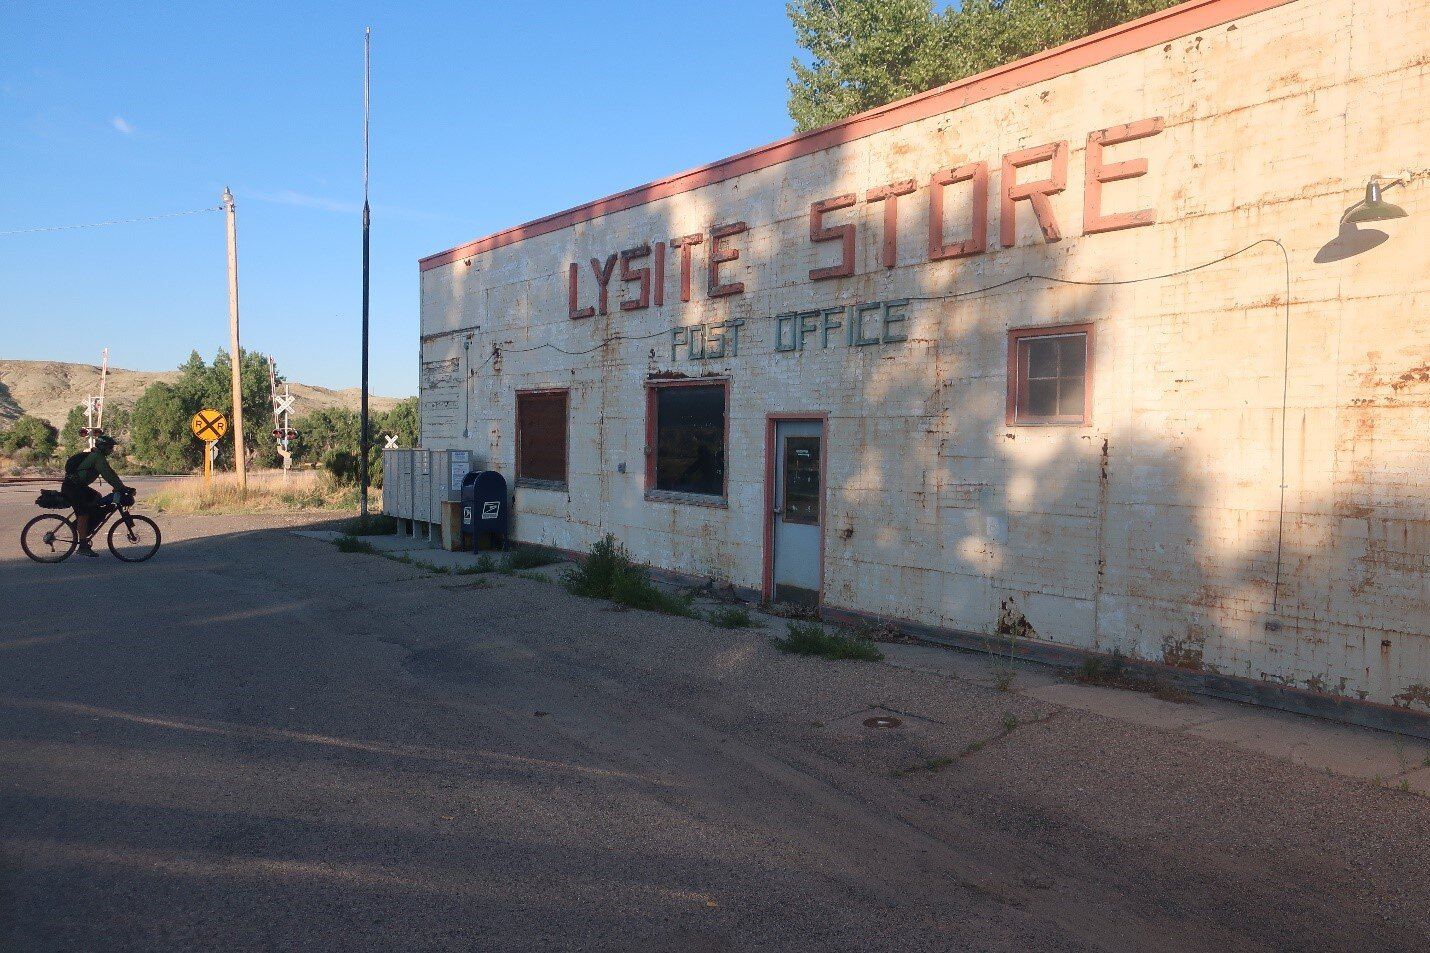 Off the beaten path in Lysite, Wyoming